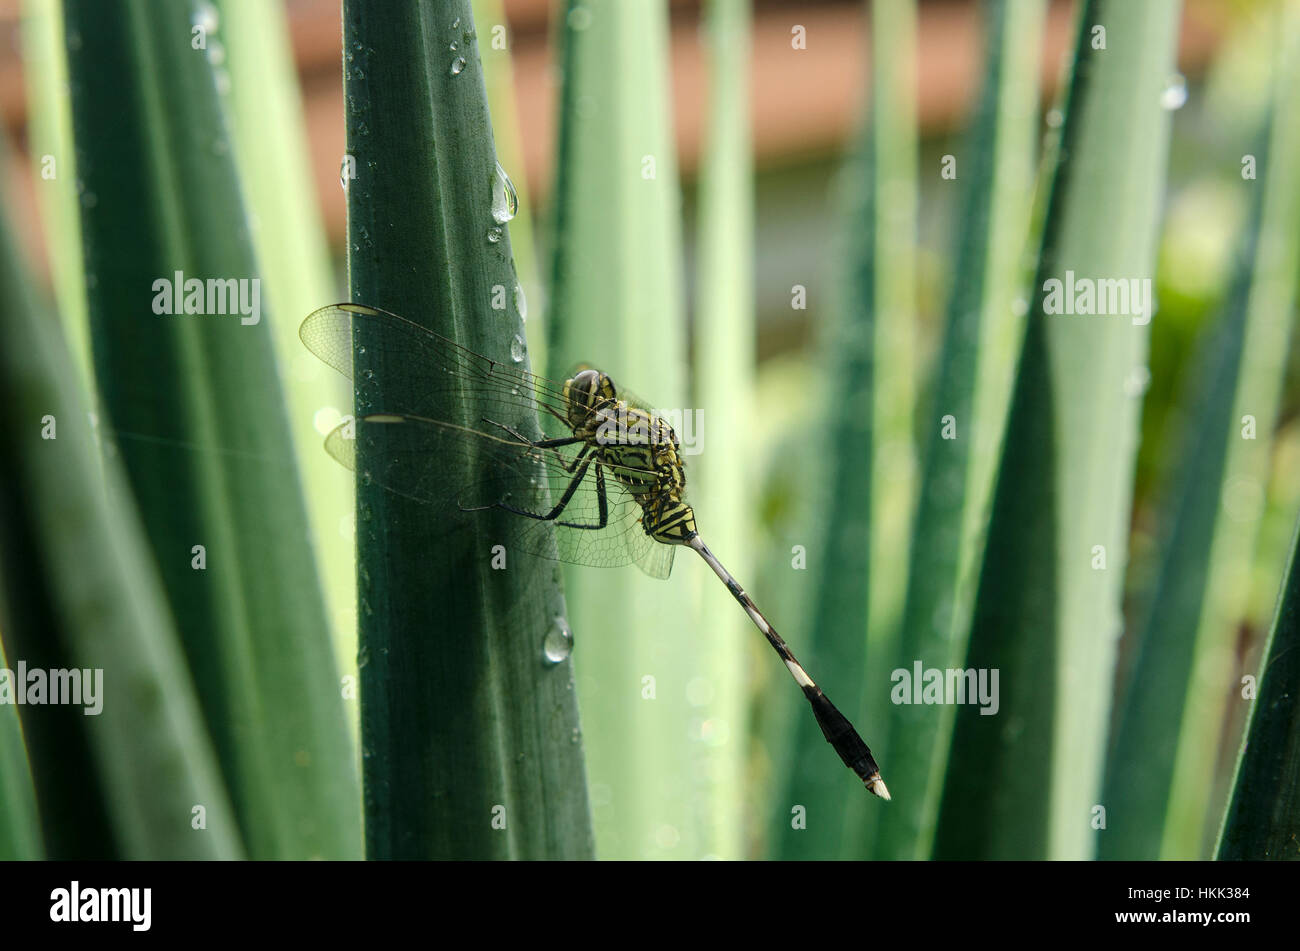 Dragonflies and Morning Dew - Stock Image